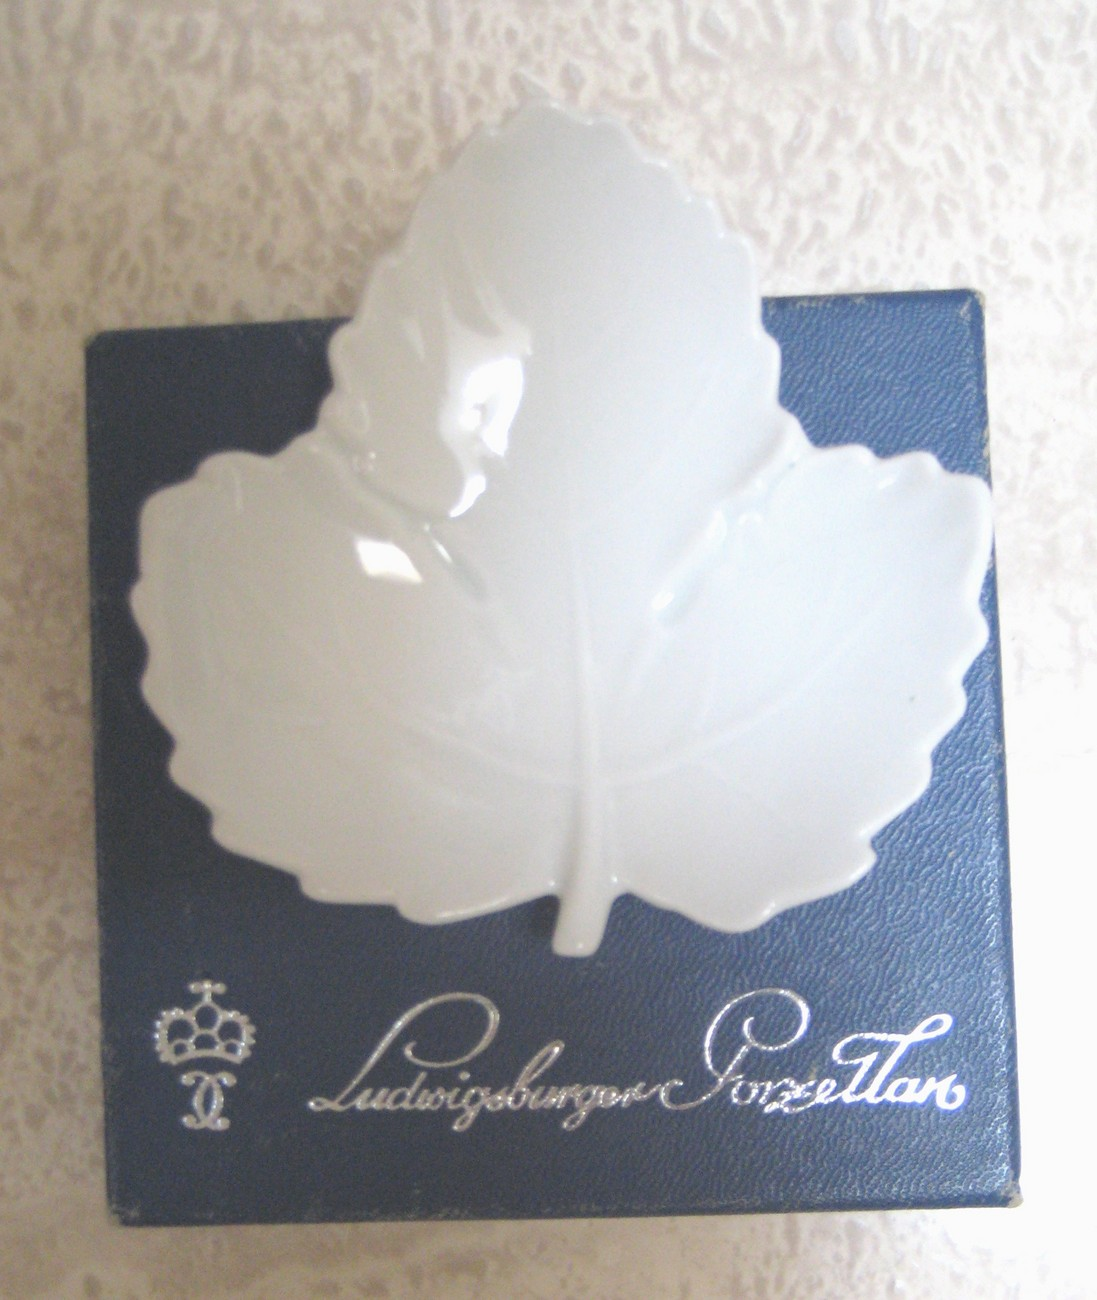 Vintage Leaf dish- MINT in BOX- Ludwigsburger Porzellan